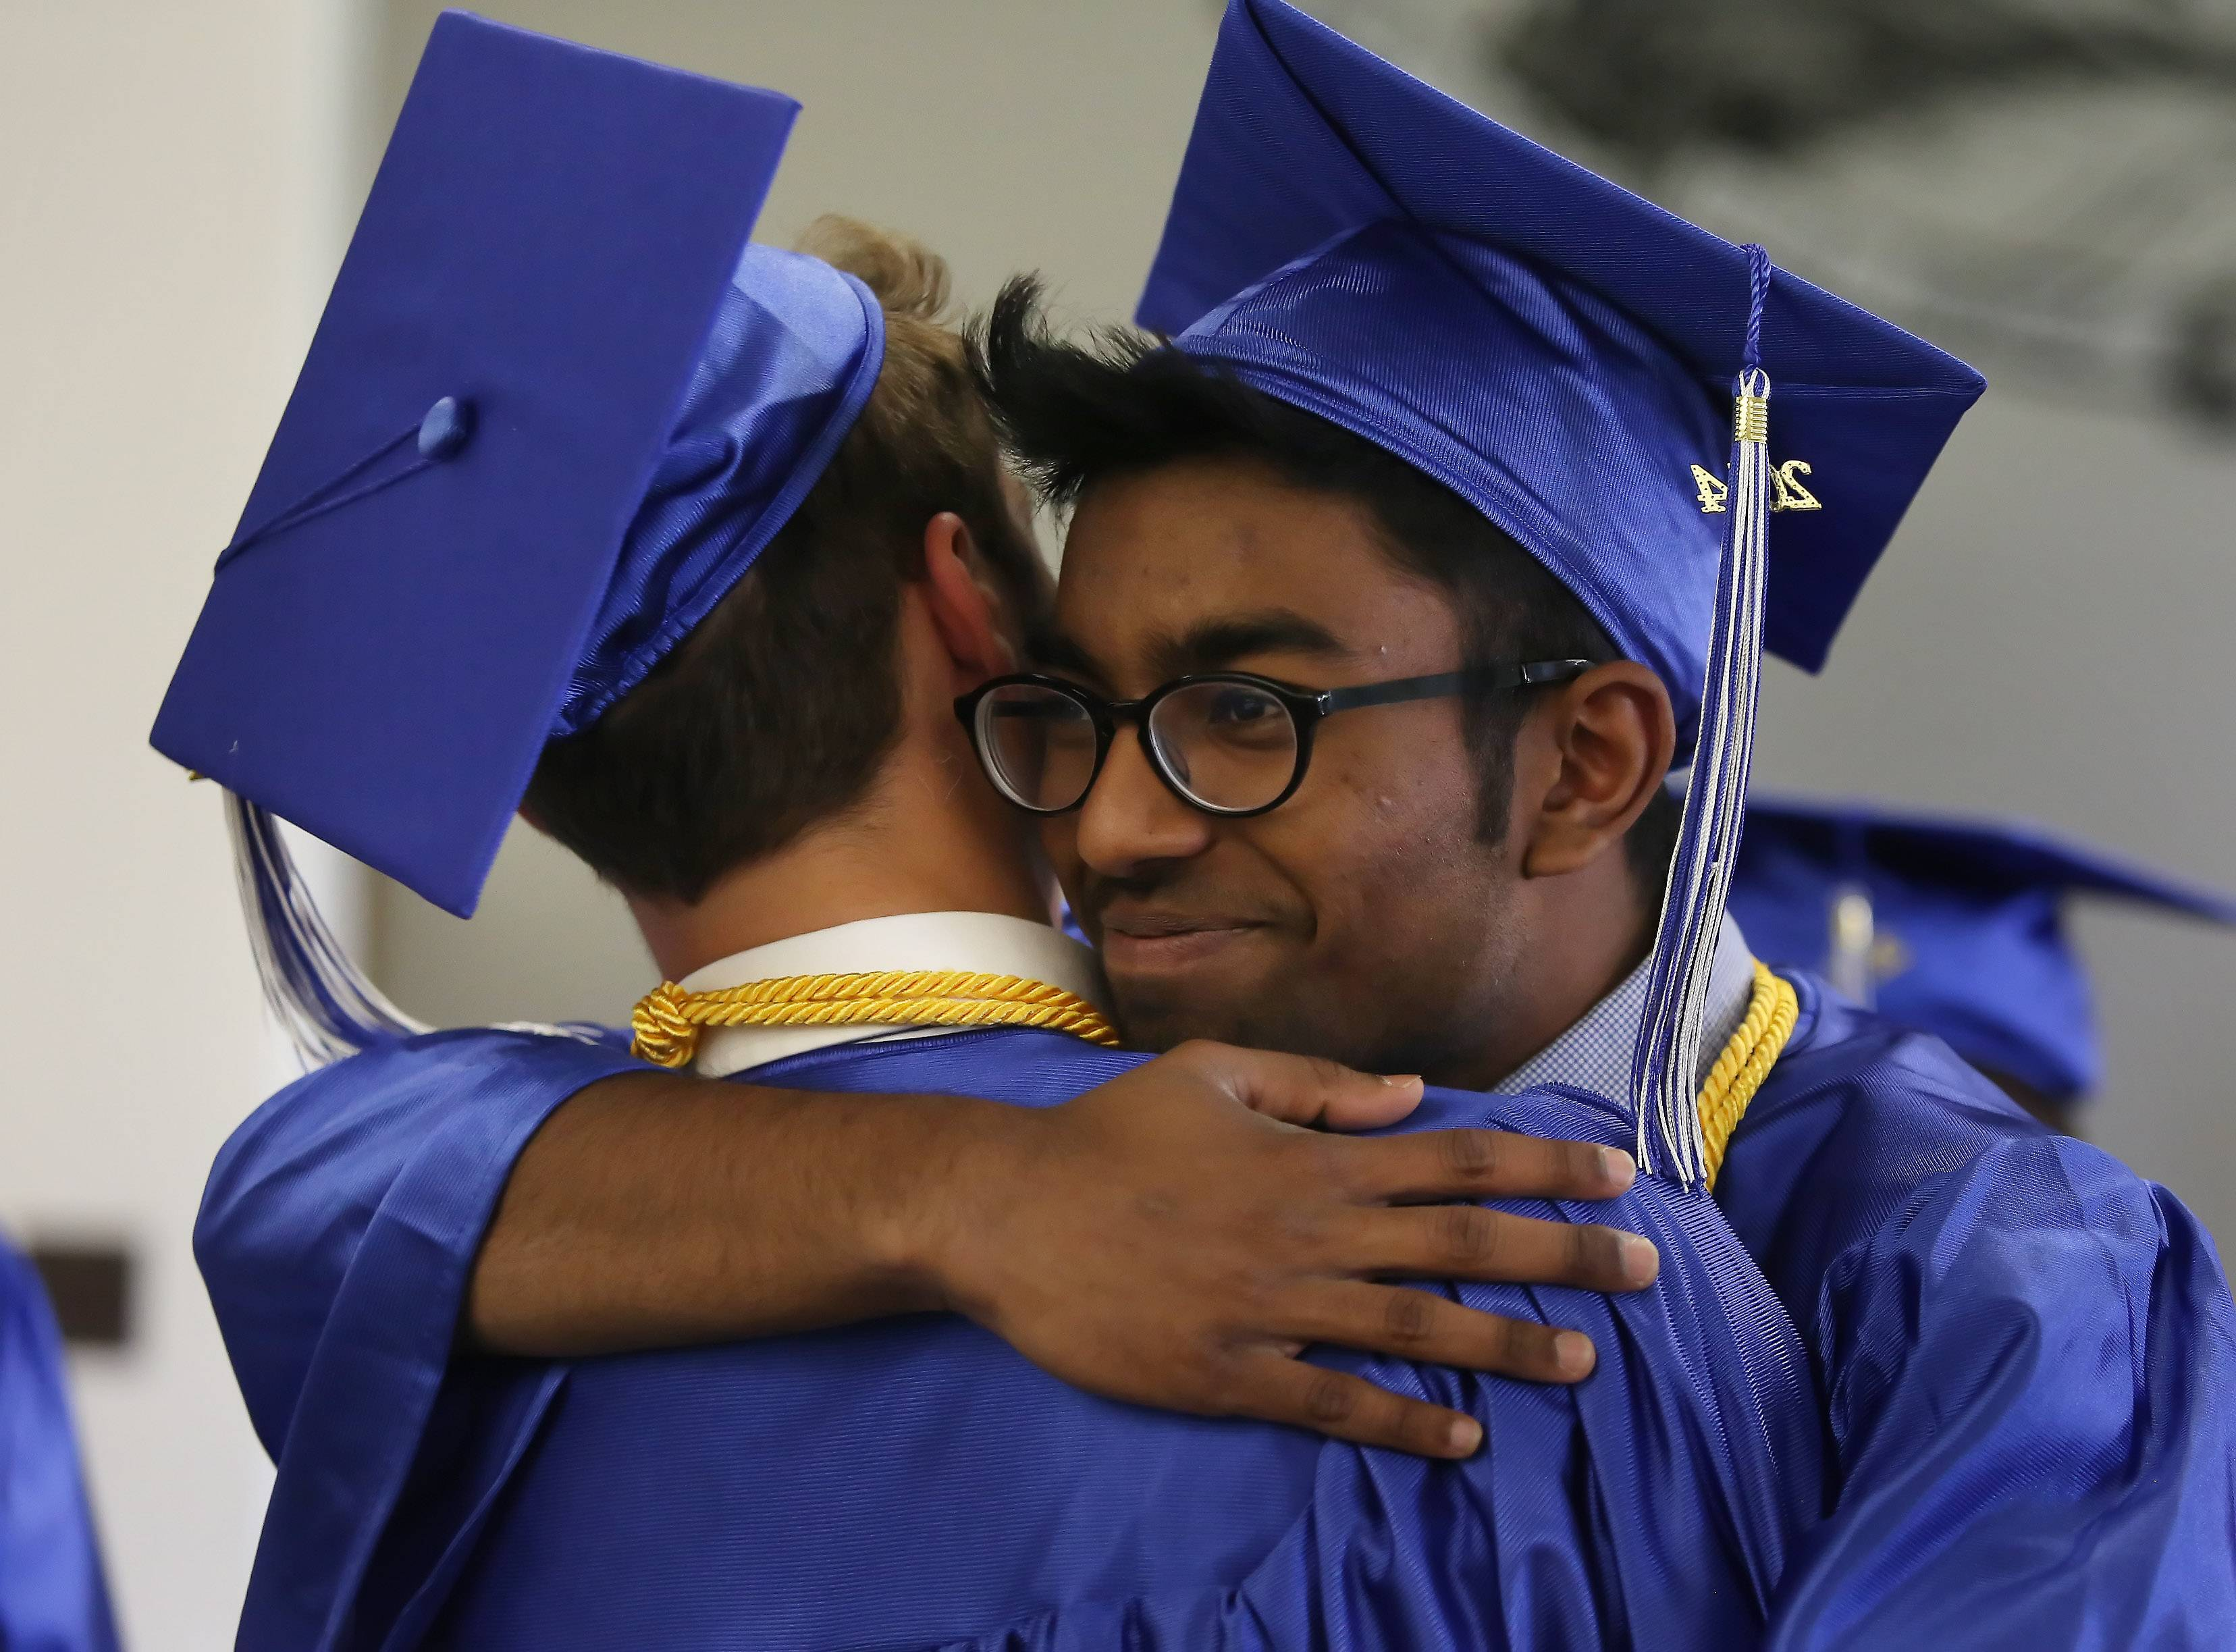 Santhosh Ebenezer, right, hugs classmate David Morrison during the Christian Liberty Academy graduation on Sunday in Arlington Heights. Family and friends watched as 28 seniors received their diplomas in the commencement ceremony.